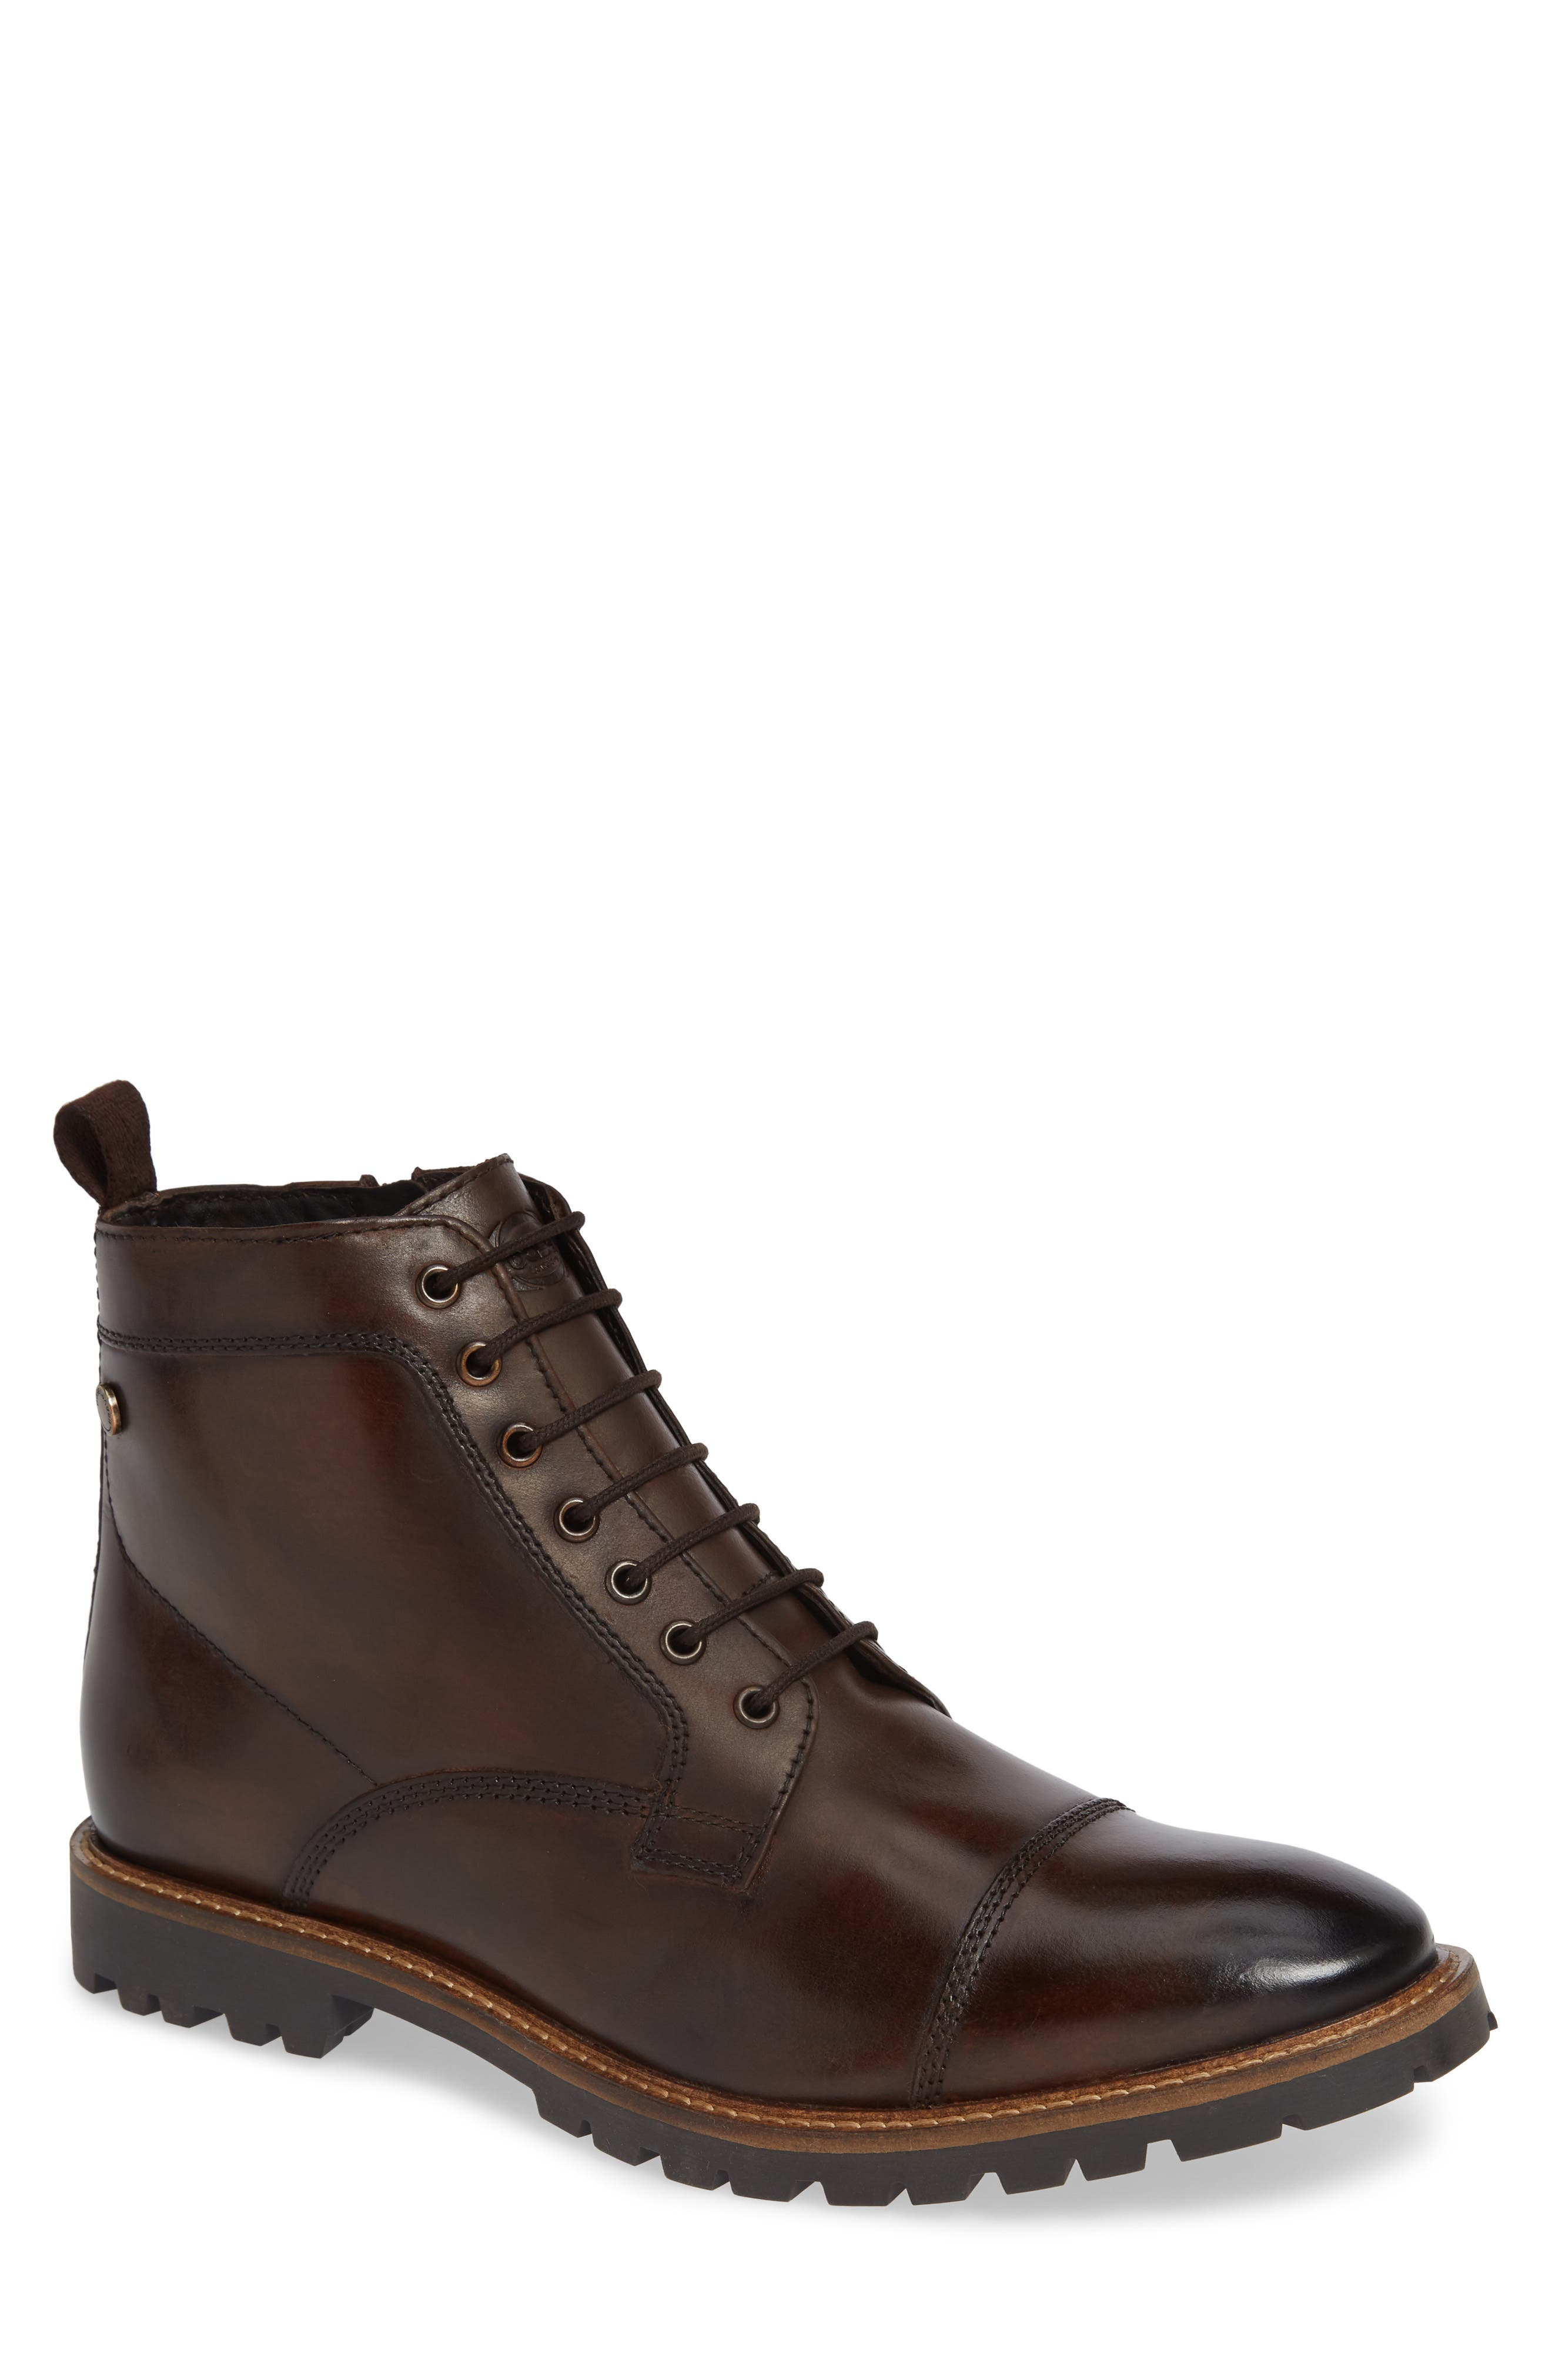 Lugged Cap Toe Boot,                             Main thumbnail 1, color,                             BROWN